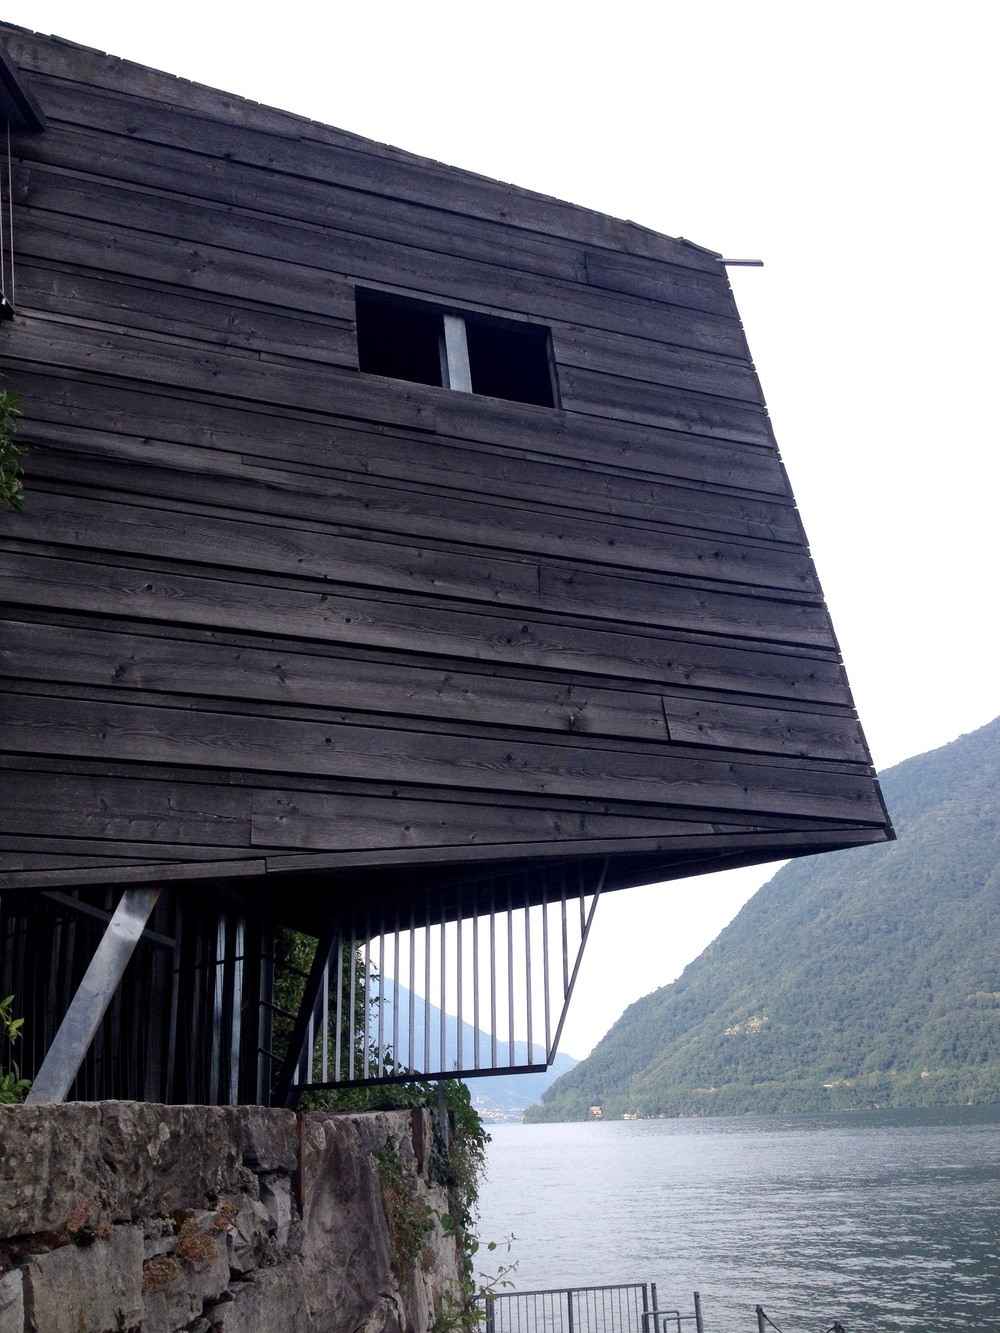 A custom built area for sunbathing, changing, and diving by the lake at Brienno, Italy.